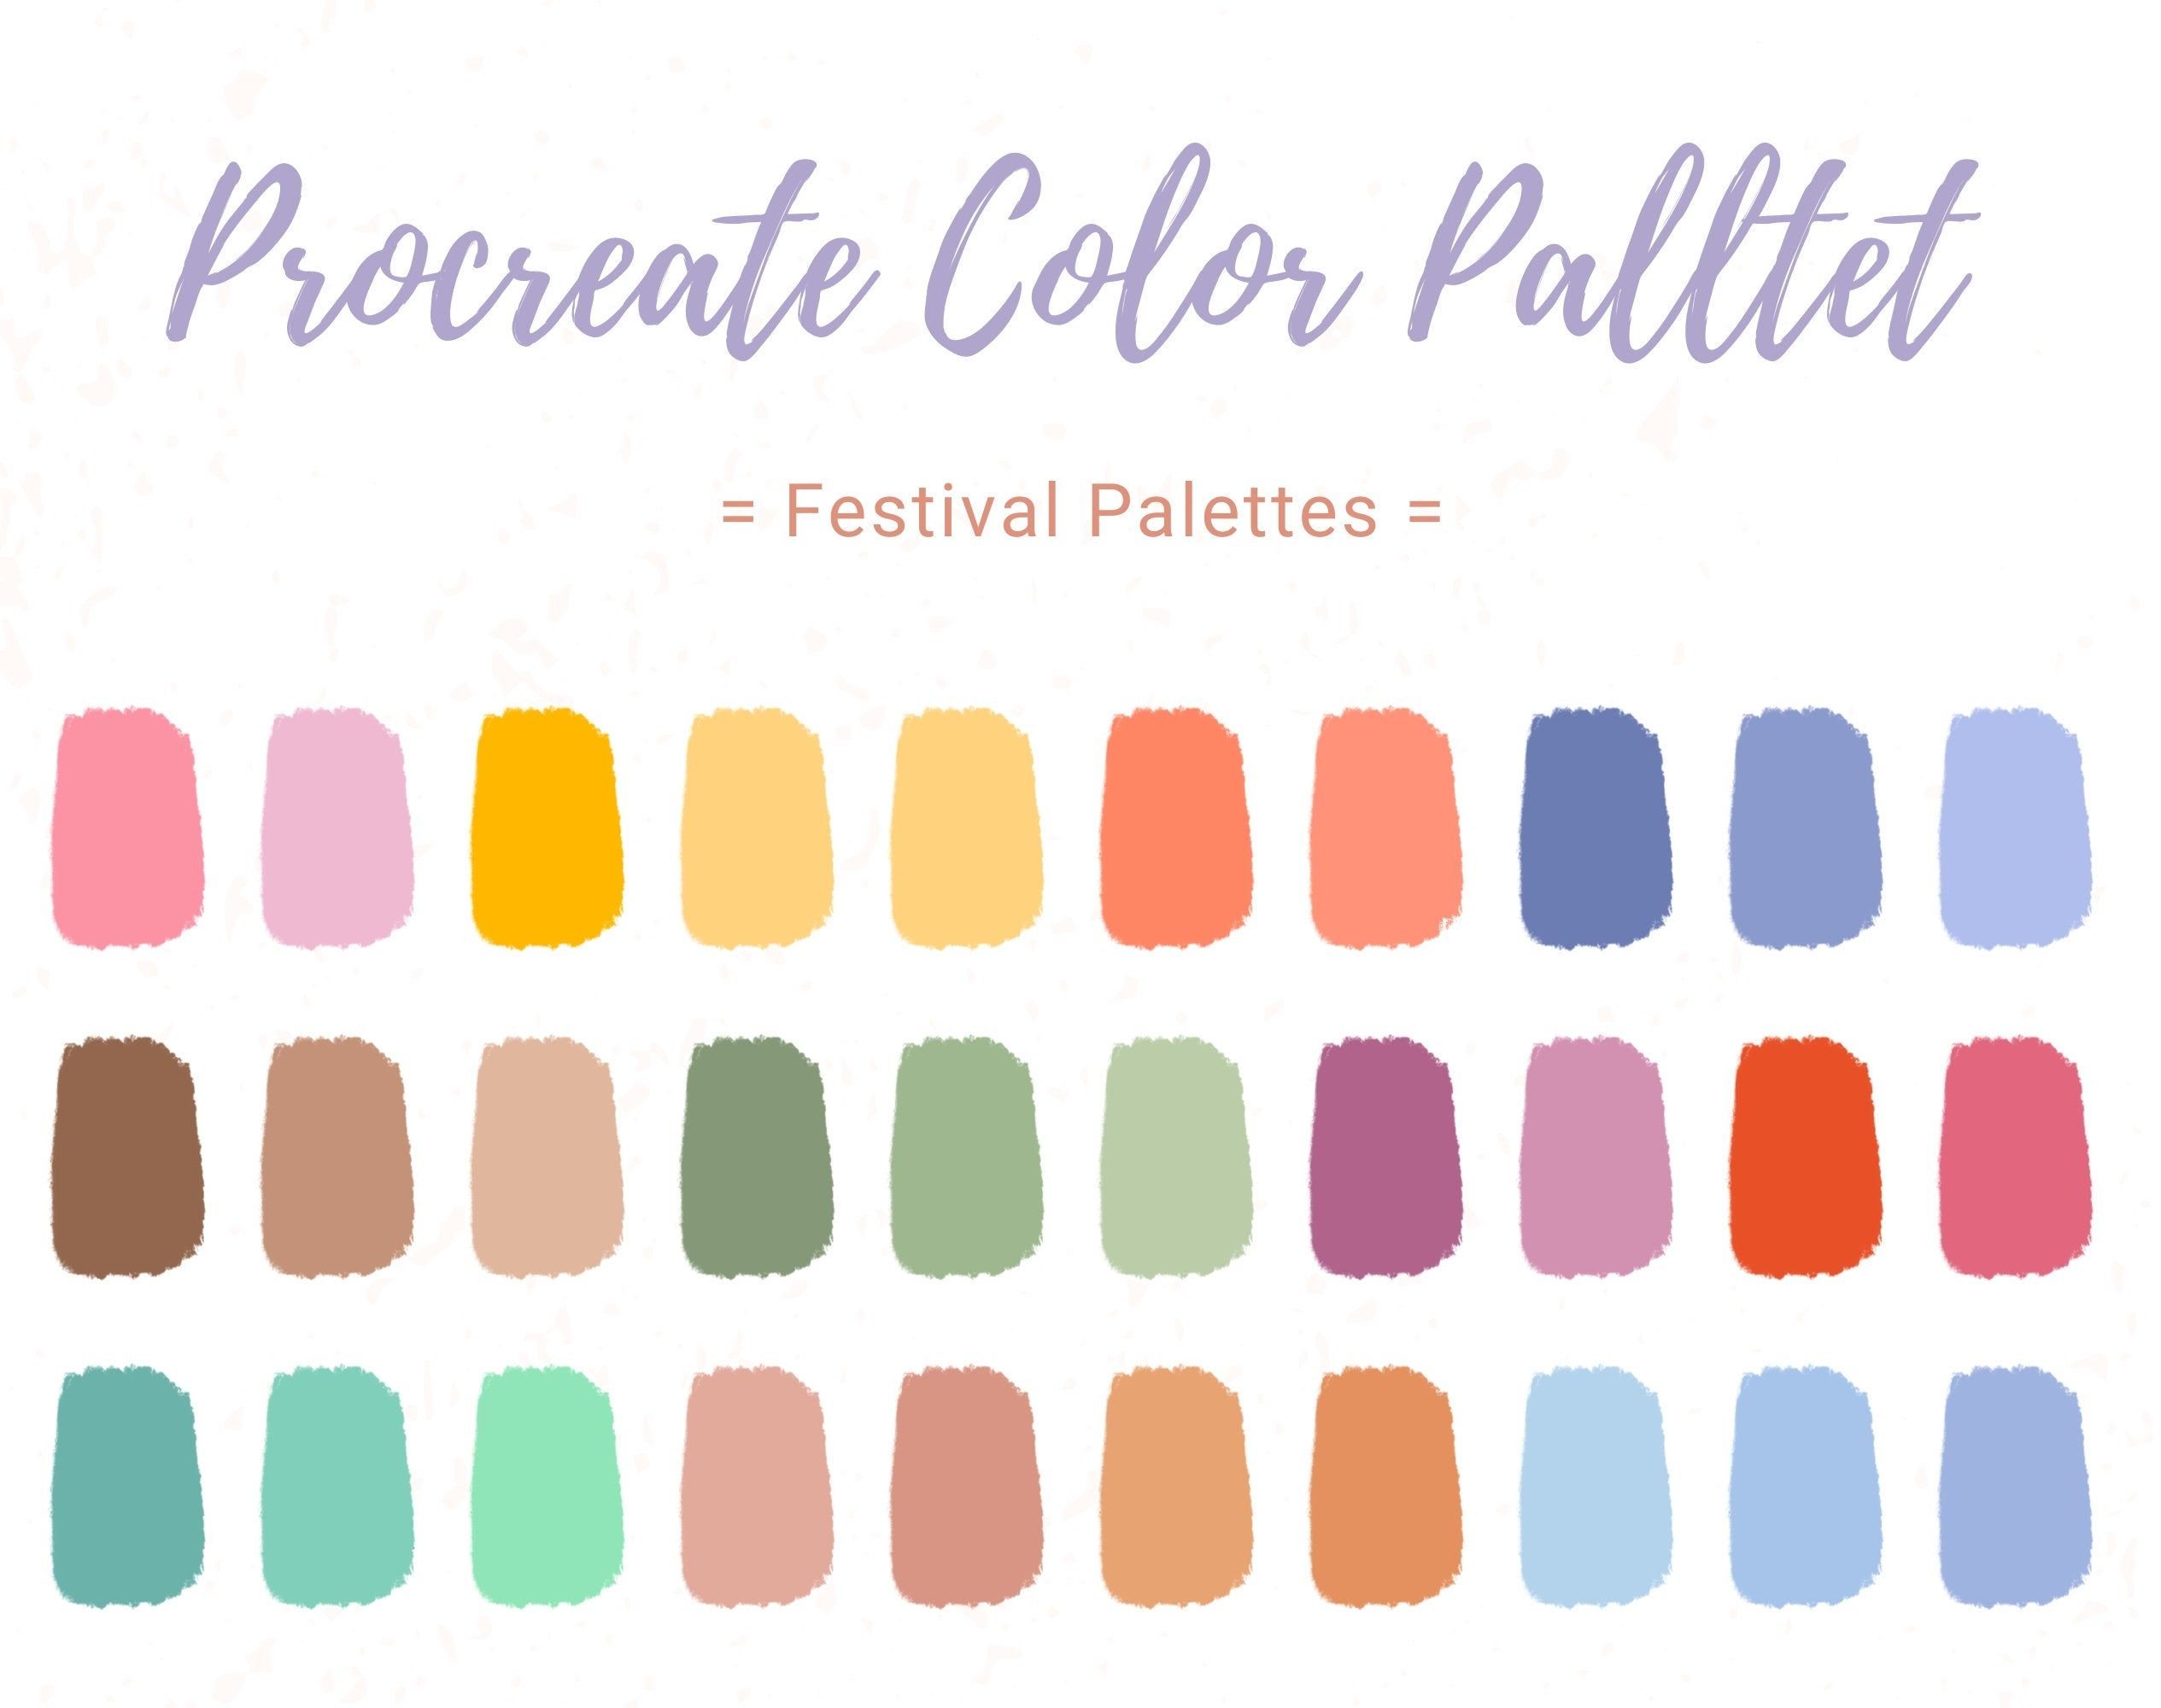 30 Color Palette Colorful Swatch Green Watch Procreate Etsy In 2020 Color Palette Design Color Palette Color Palette Challenge